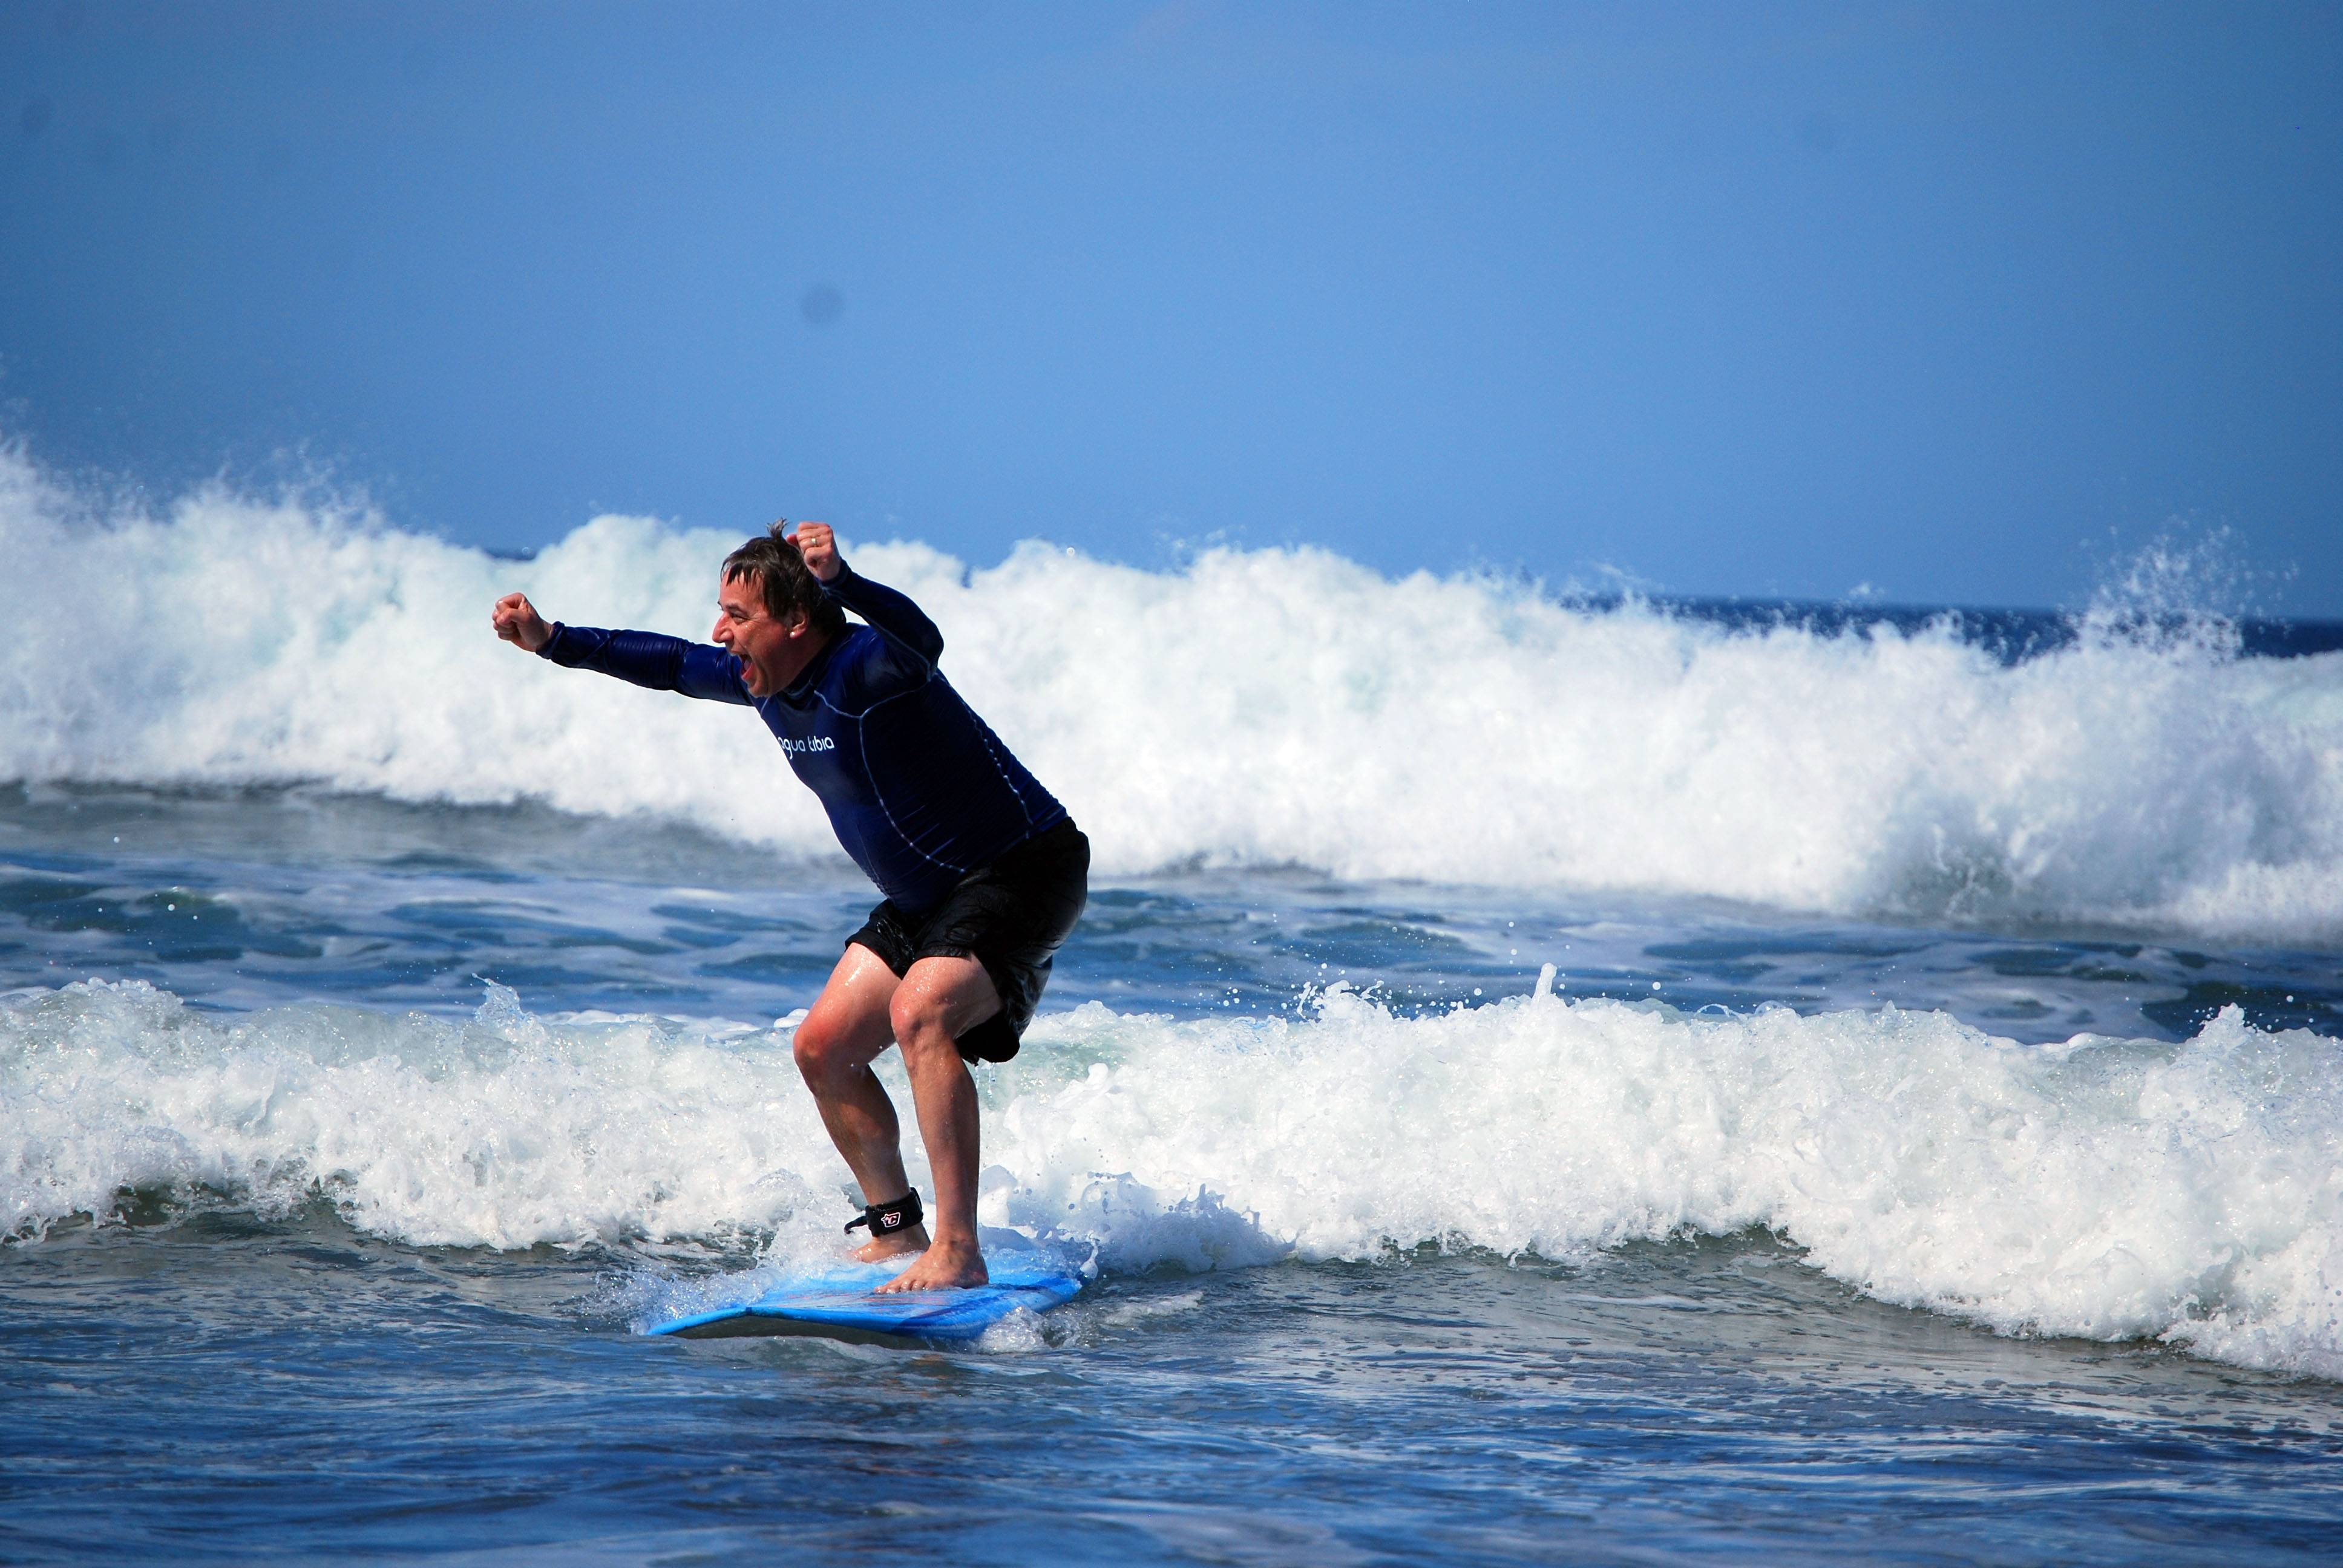 First-time surfer Andrew Dombek of N. Ferrisburg, Vt., rides the waves at Playa Guiones in Nosara, Costa Rica.